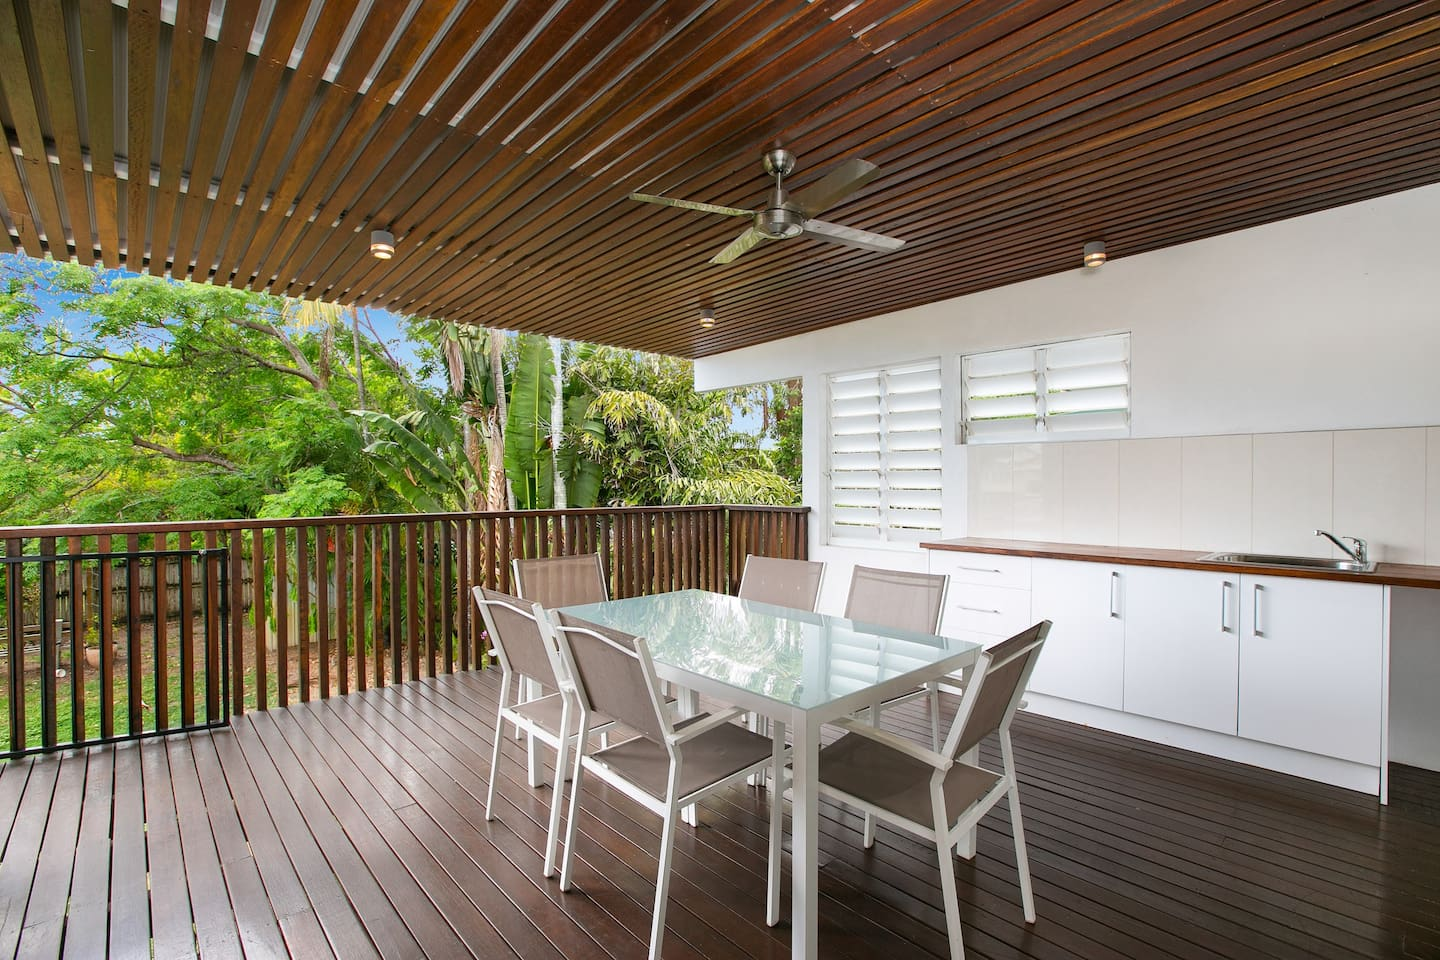 Enjoy outside dining on this lovely deck overlooking the garden